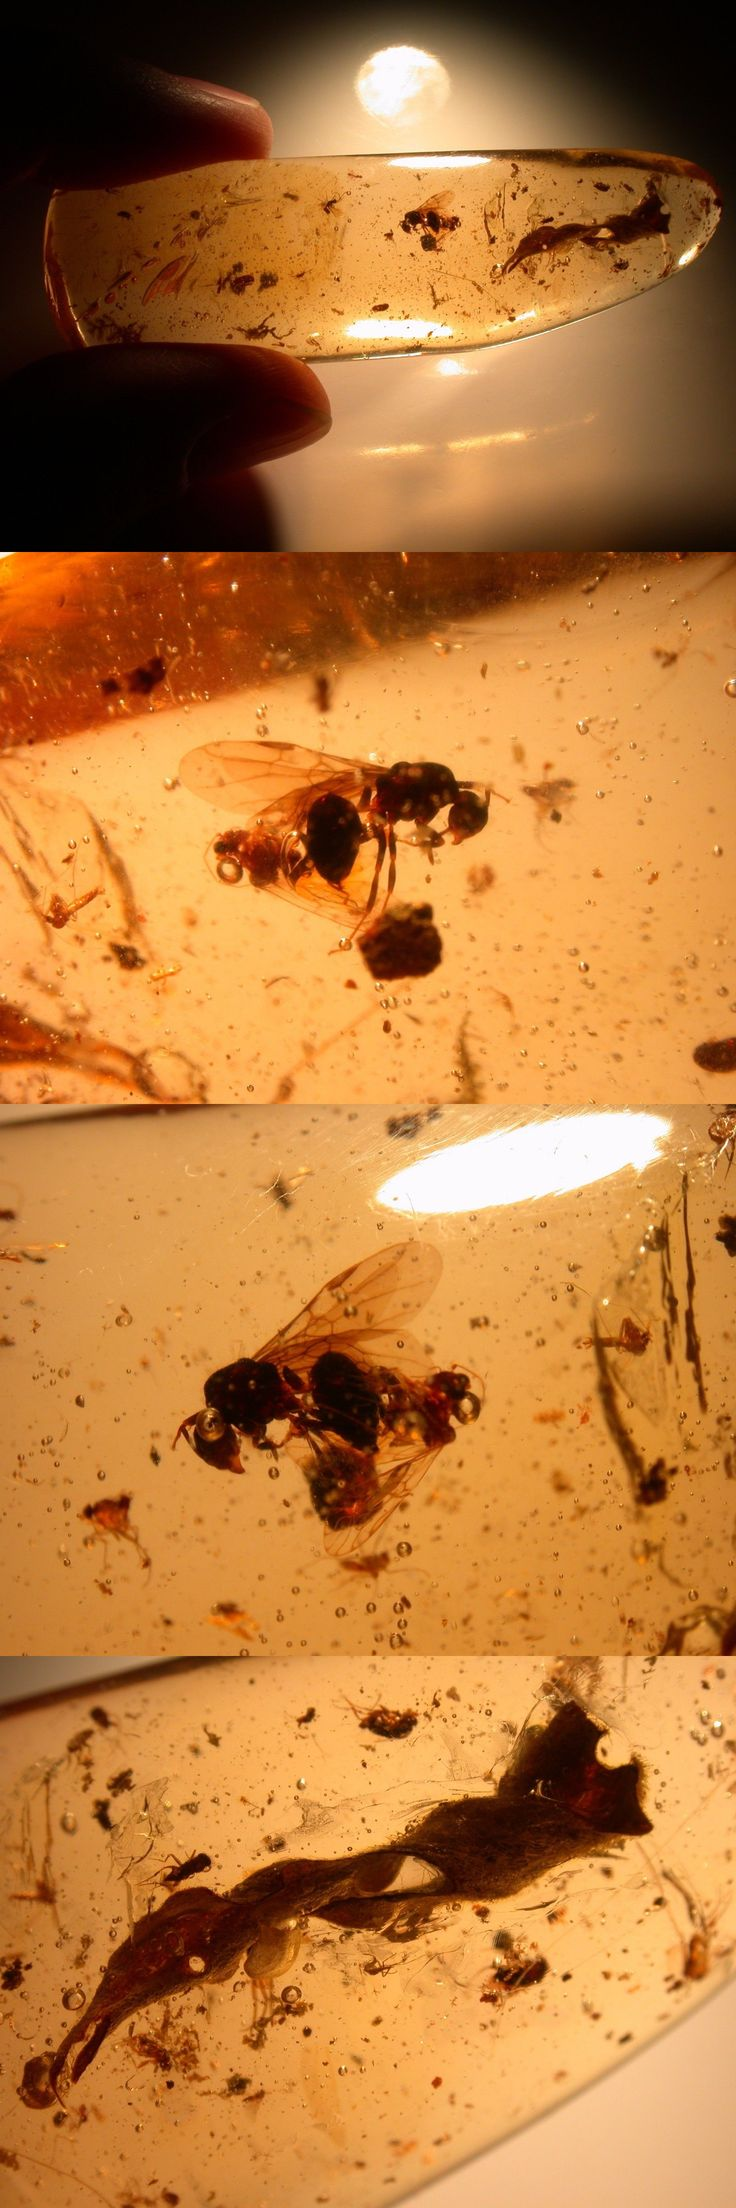 Amber 10191: Large Winged Ant, Long Curled Leaf, Spider, 11 Flies In Colombian Copal Amber -> BUY IT NOW ONLY: $35 on eBay!